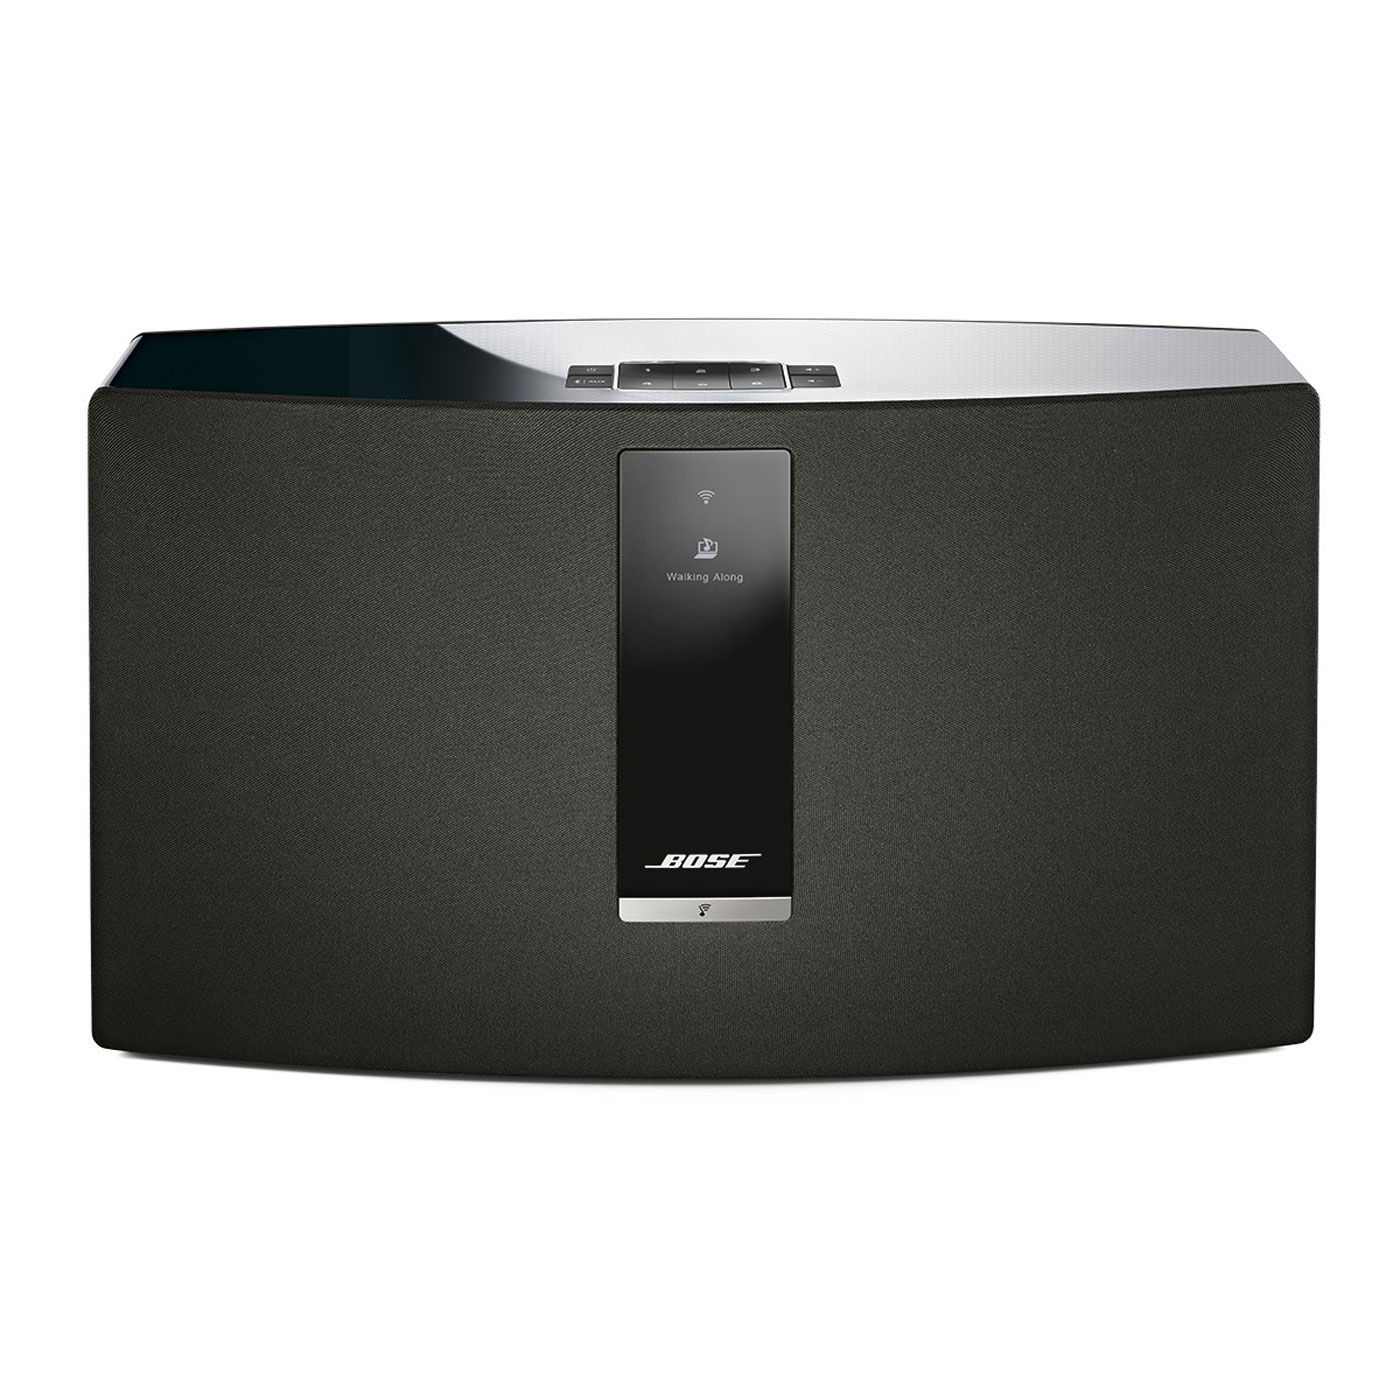 enceinte plafond bluetooth hautparleur del soundspark de. Black Bedroom Furniture Sets. Home Design Ideas